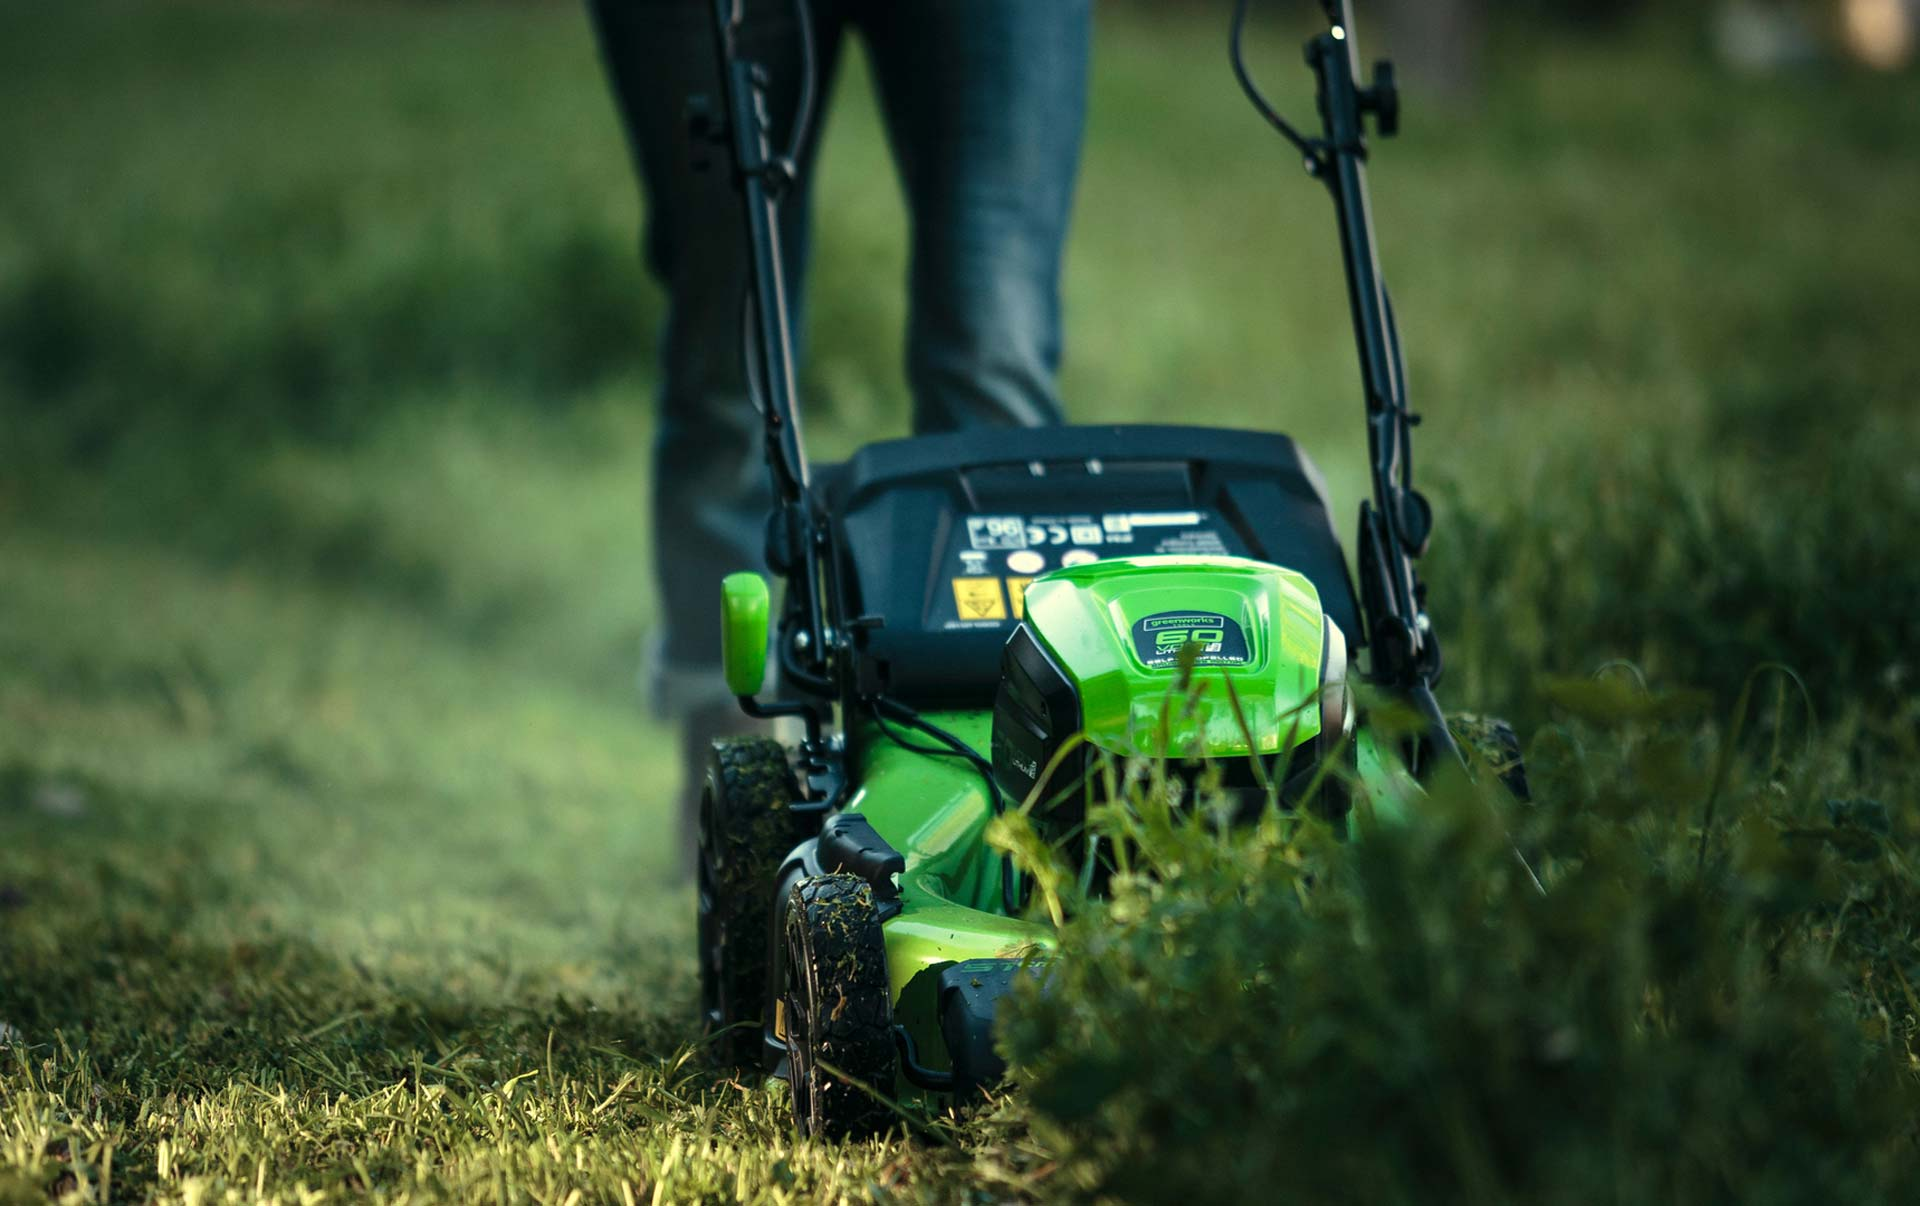 The 12 Best Lawn Mowers 2020 Reviews and Buyers Guides